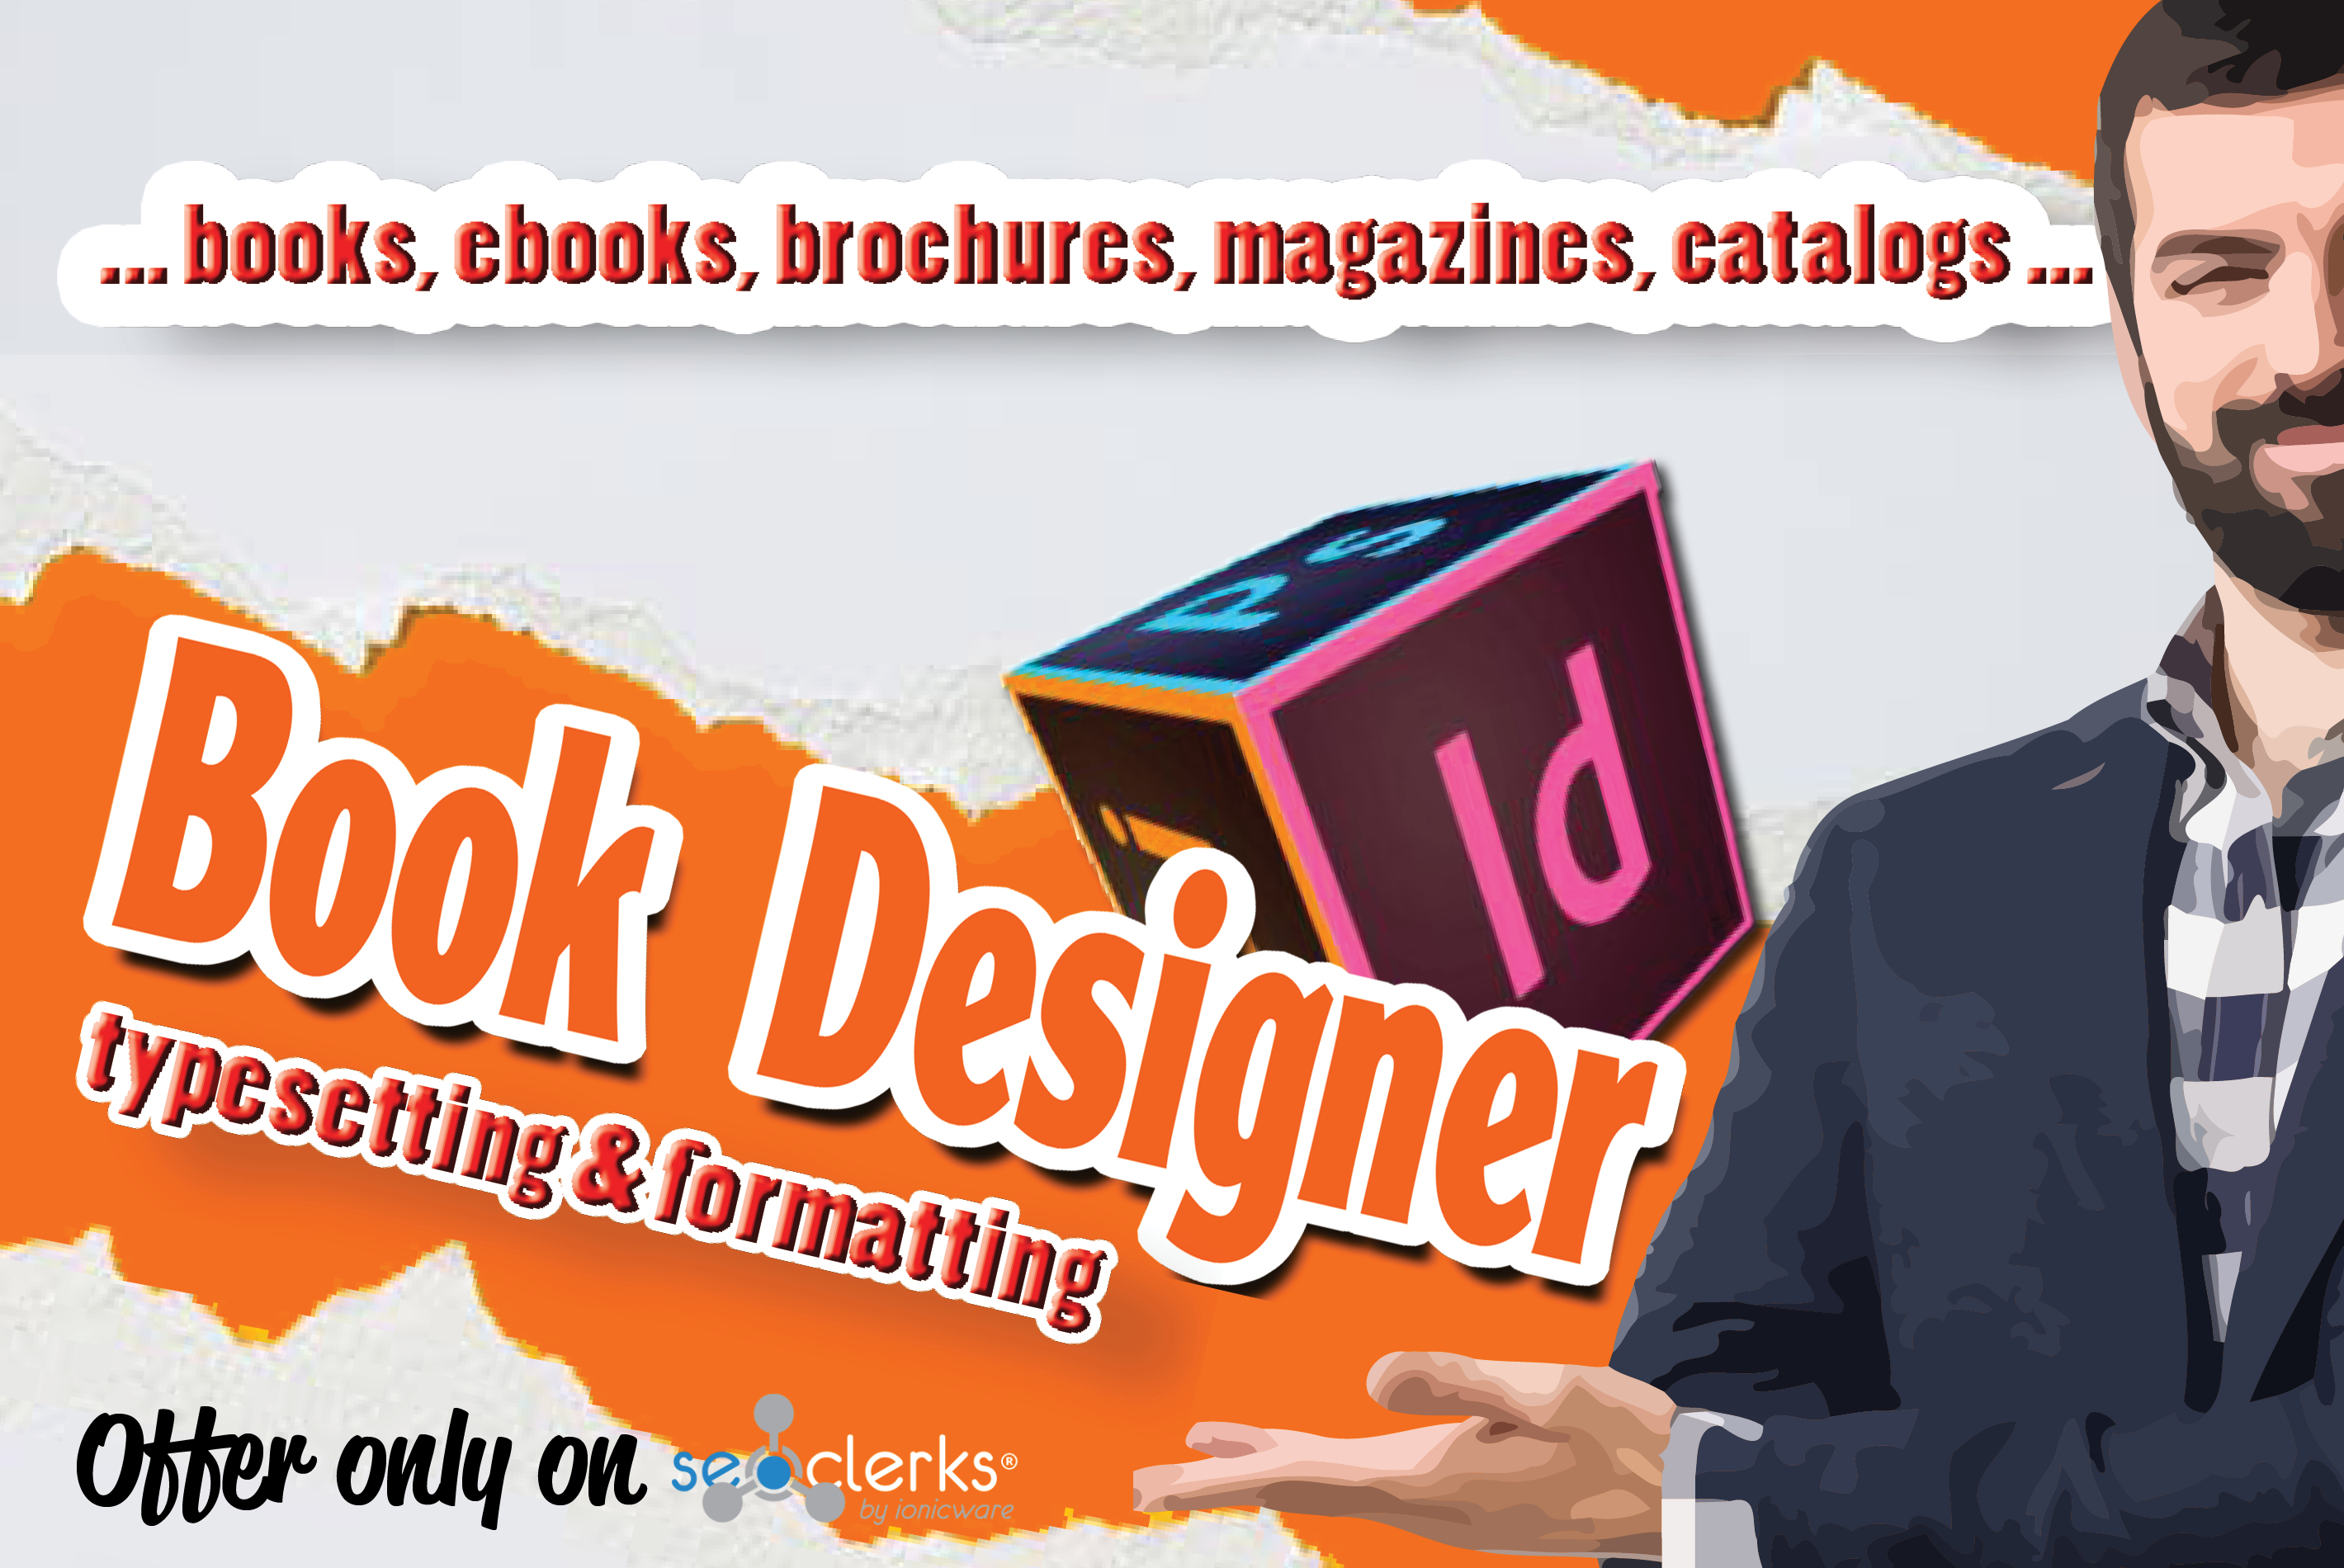 Typesetting and formatting your book for print and any platforms